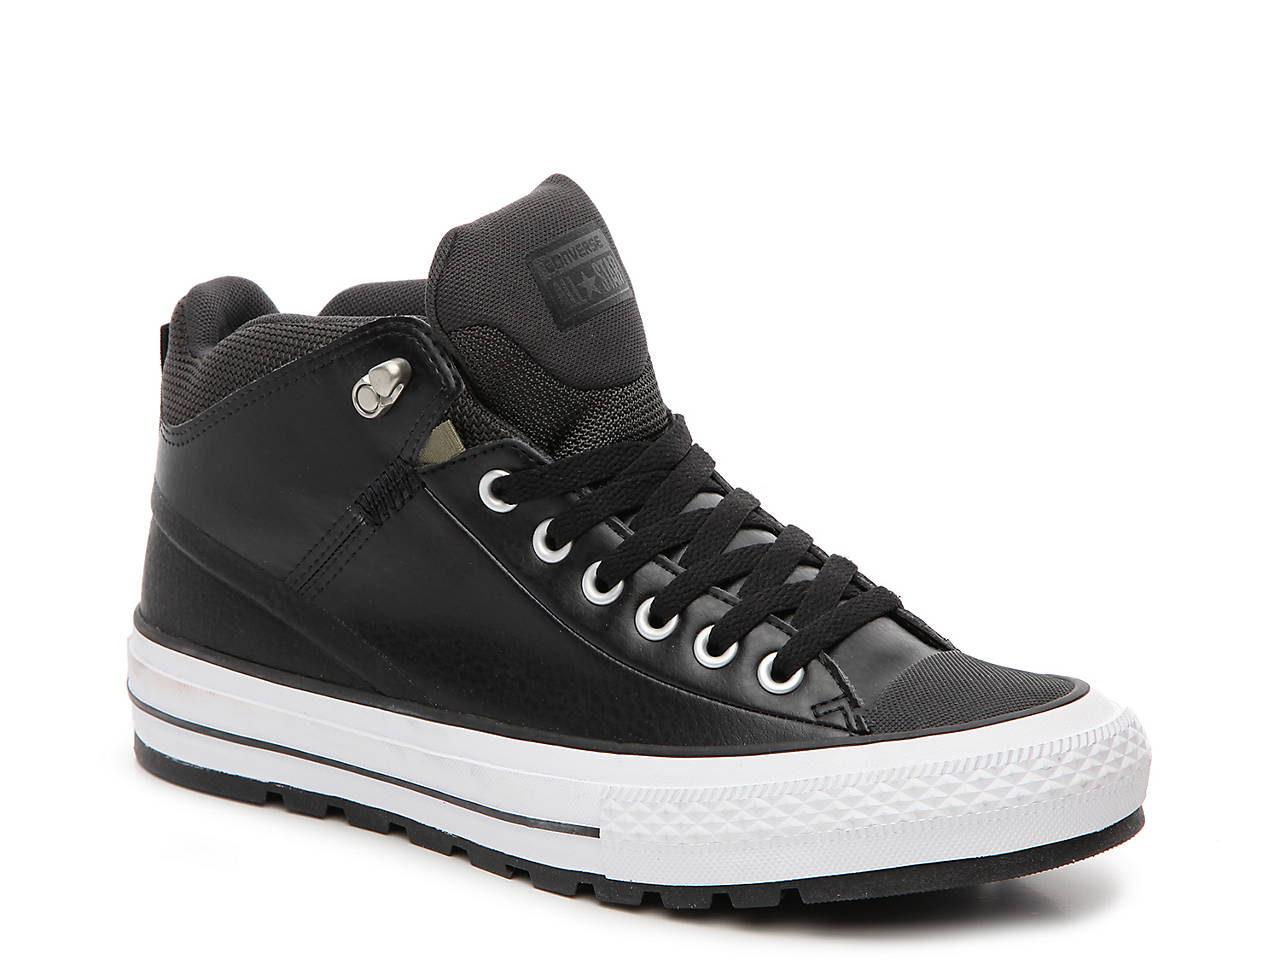 77075bc640f6 Converse Chuck Taylor All Star Hi Street High-Top Sneaker Boot ...